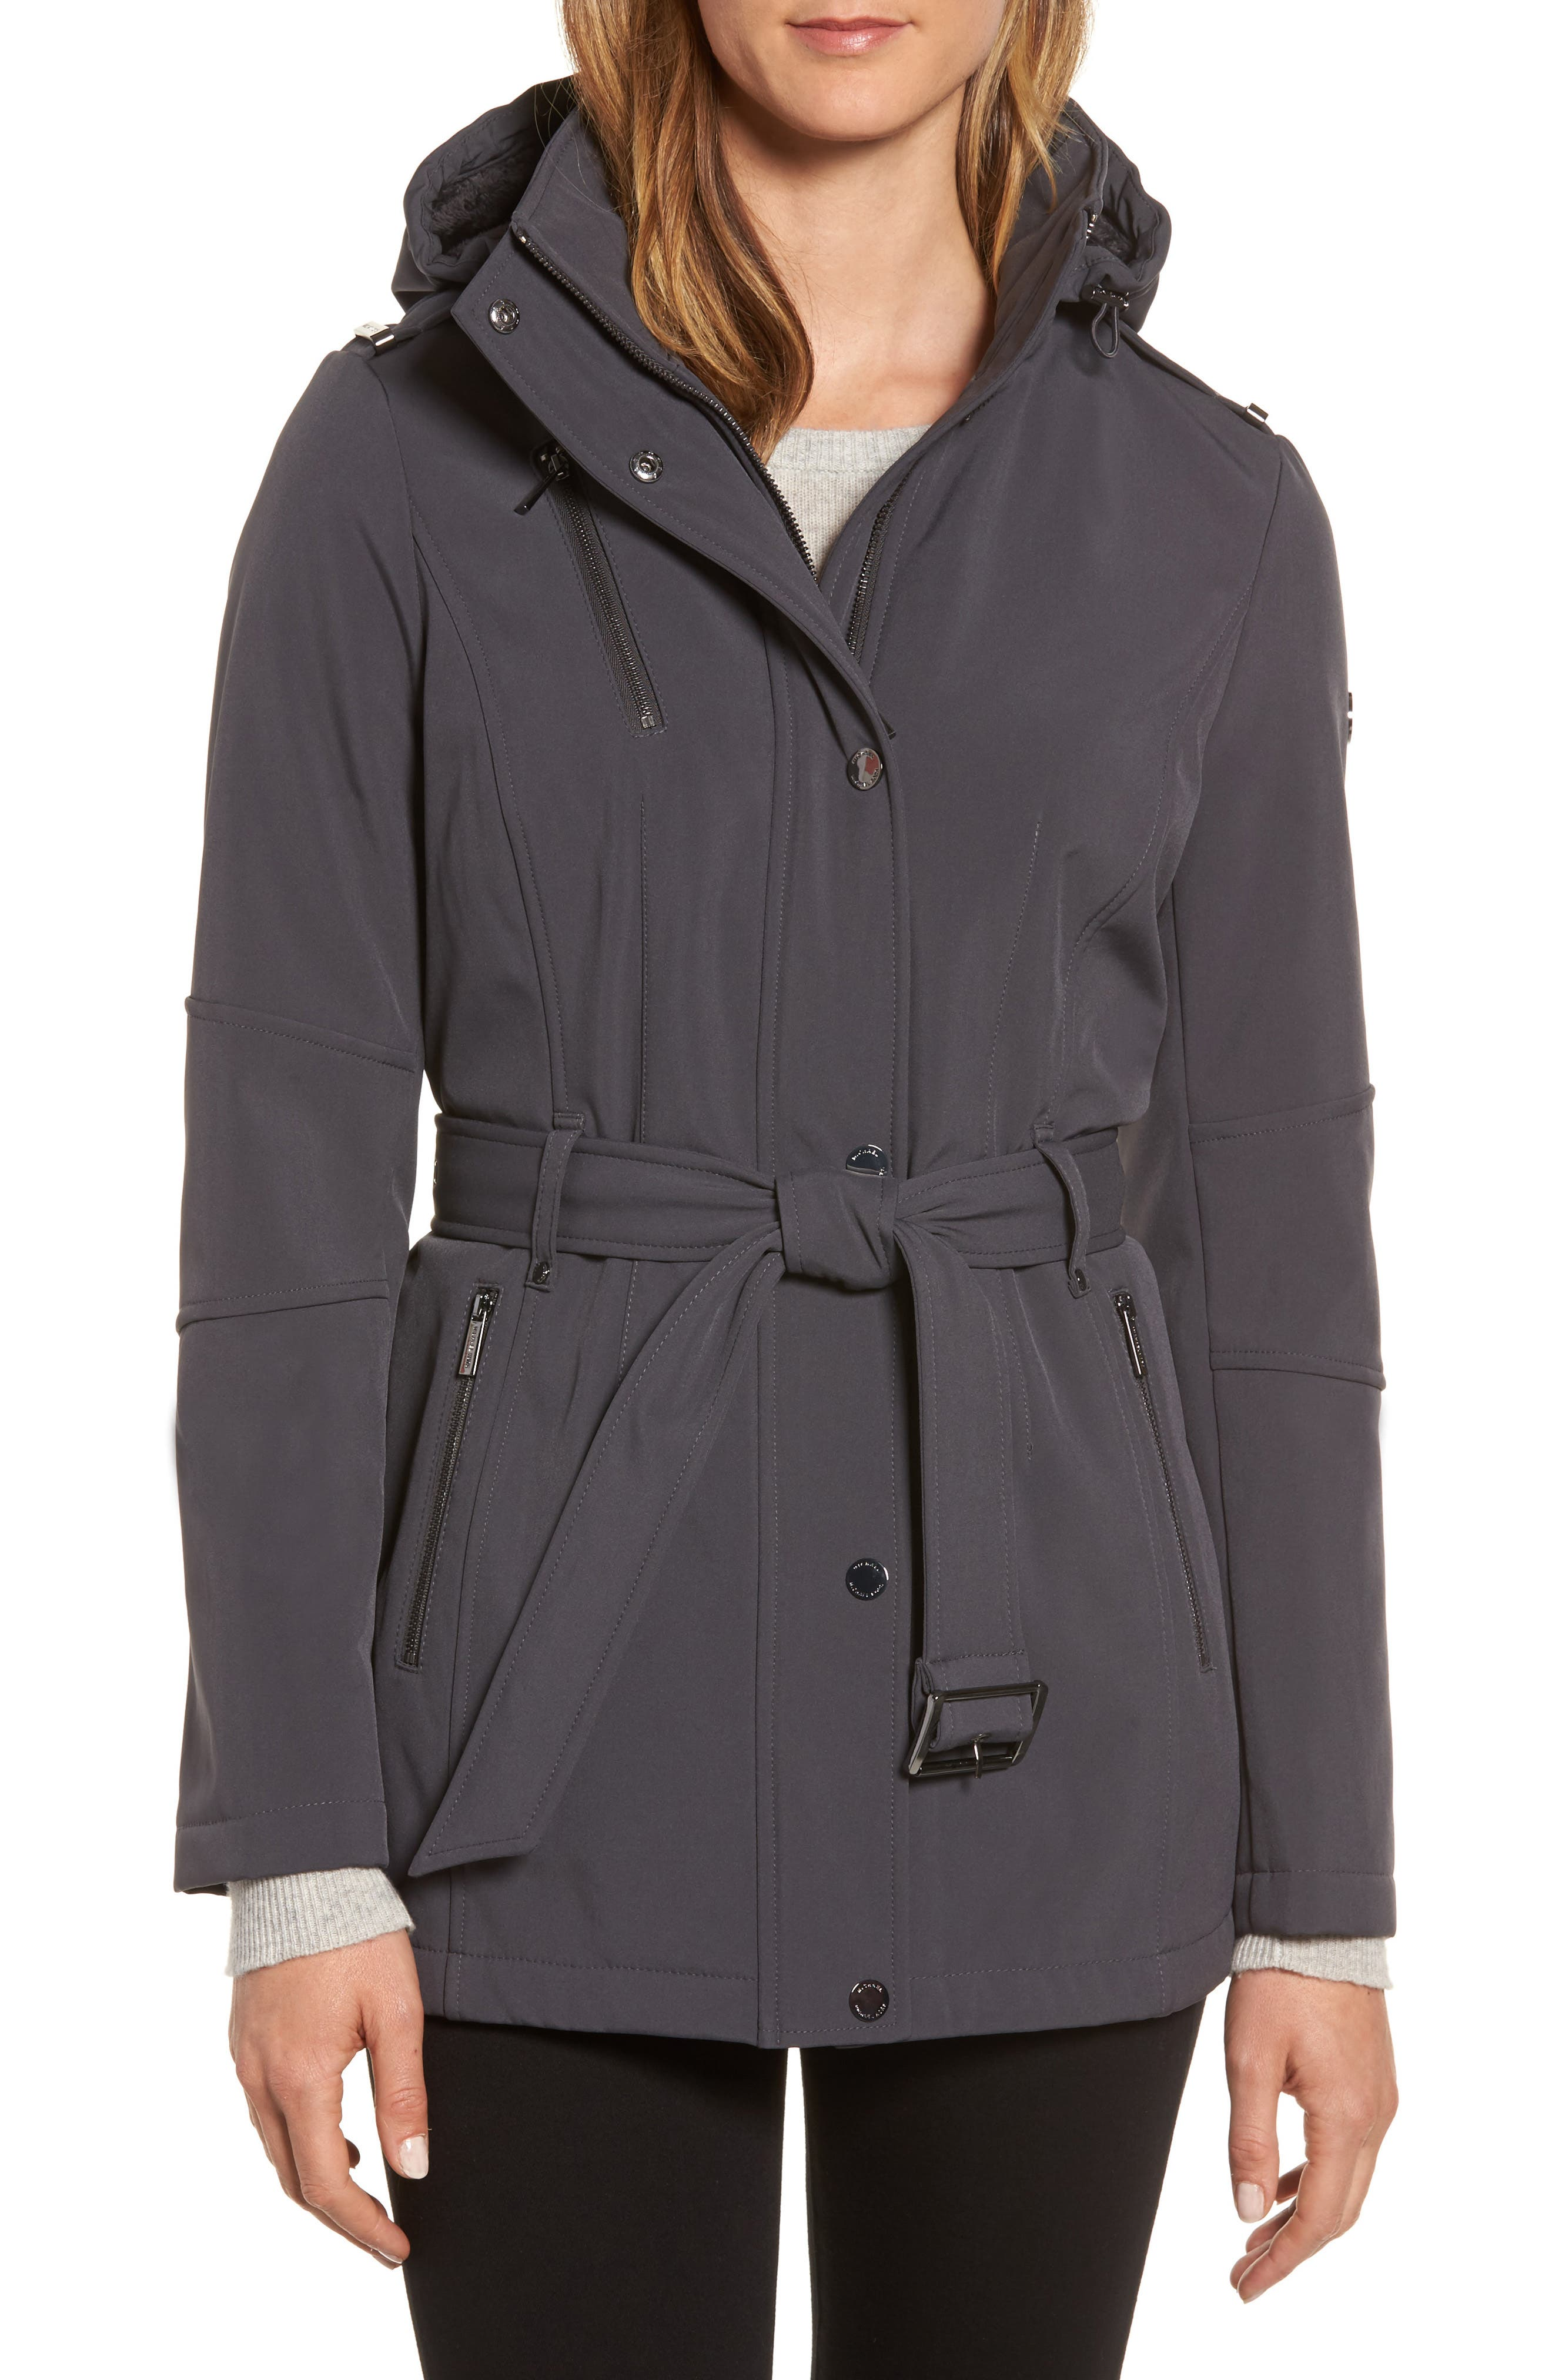 Waterproof Belted Jacket with Detachable Hood,                             Main thumbnail 1, color,                             Charcoal